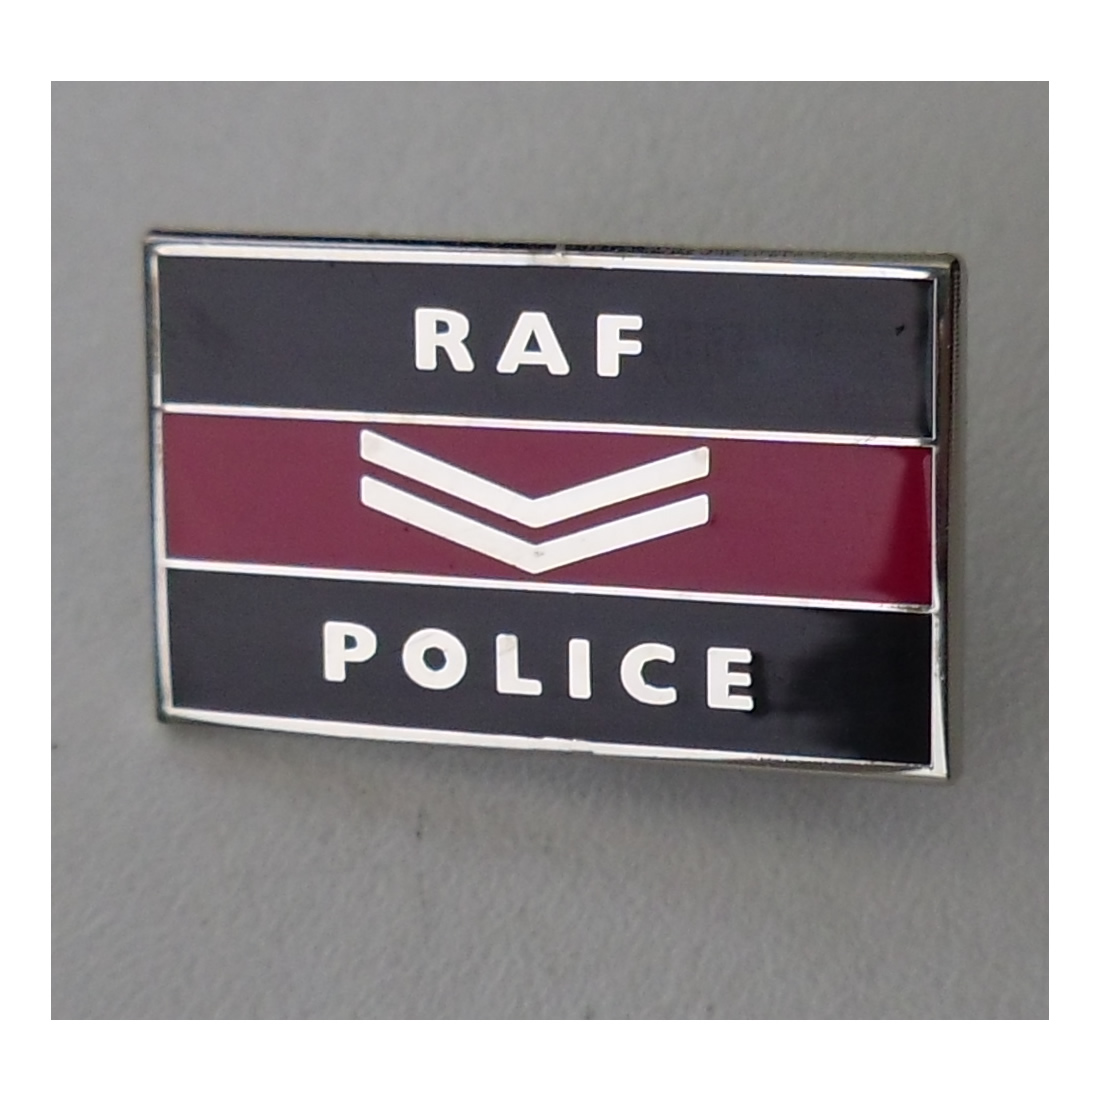 Royal Air Force Police Corporal Pin badge